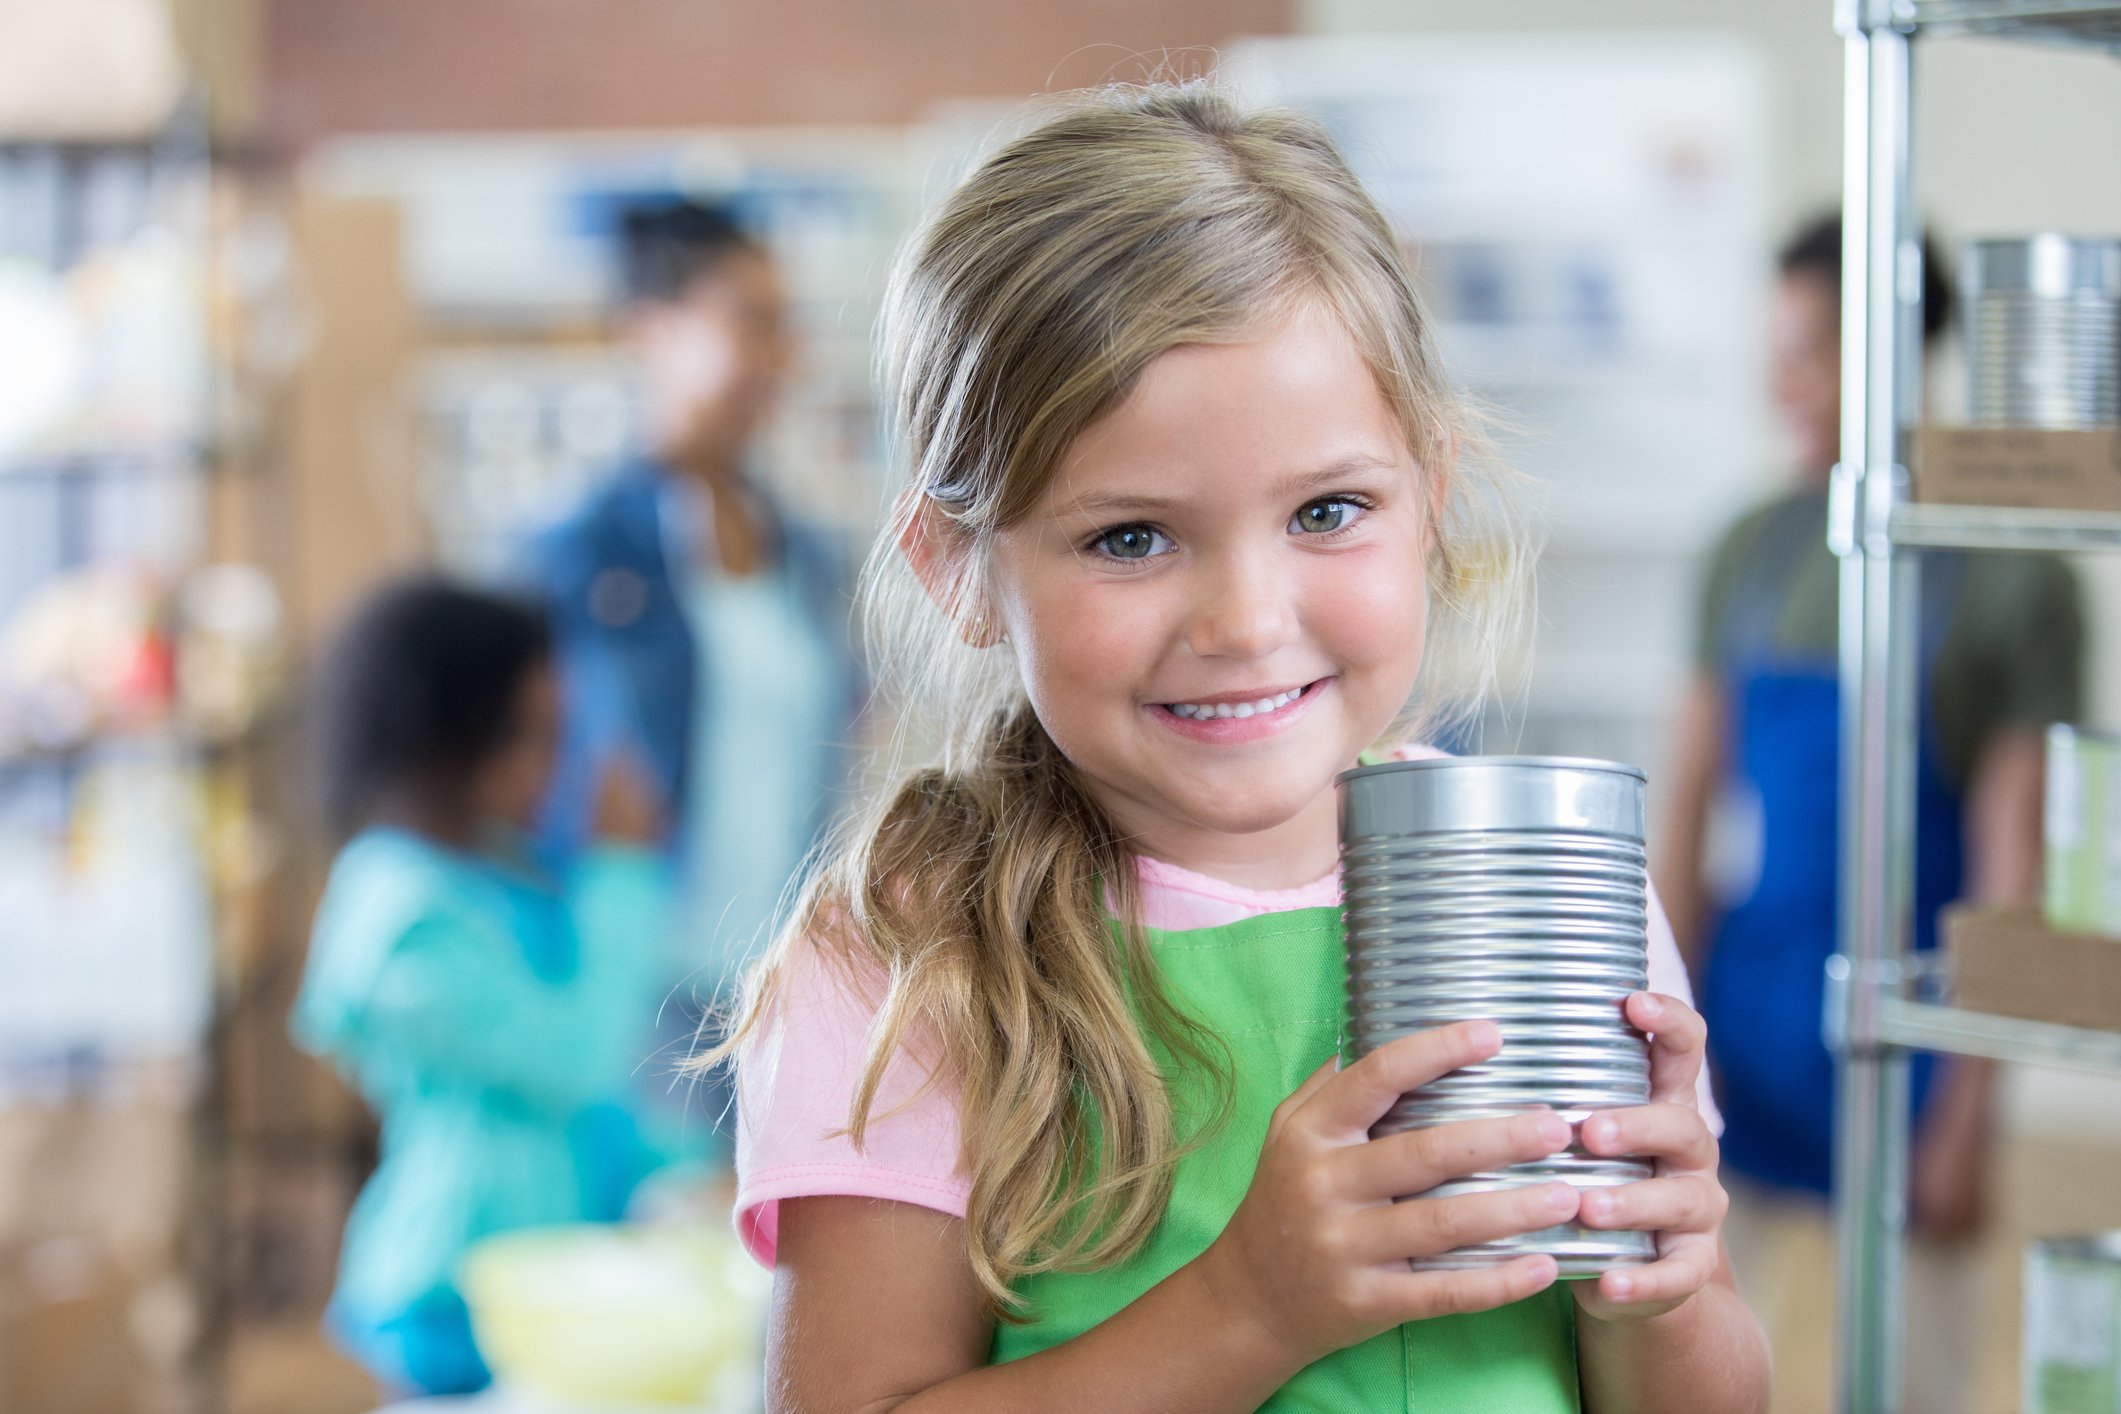 Beautiful little girl holds a can of food while volunteering with her family at at food bank. She is wearing a green apron.